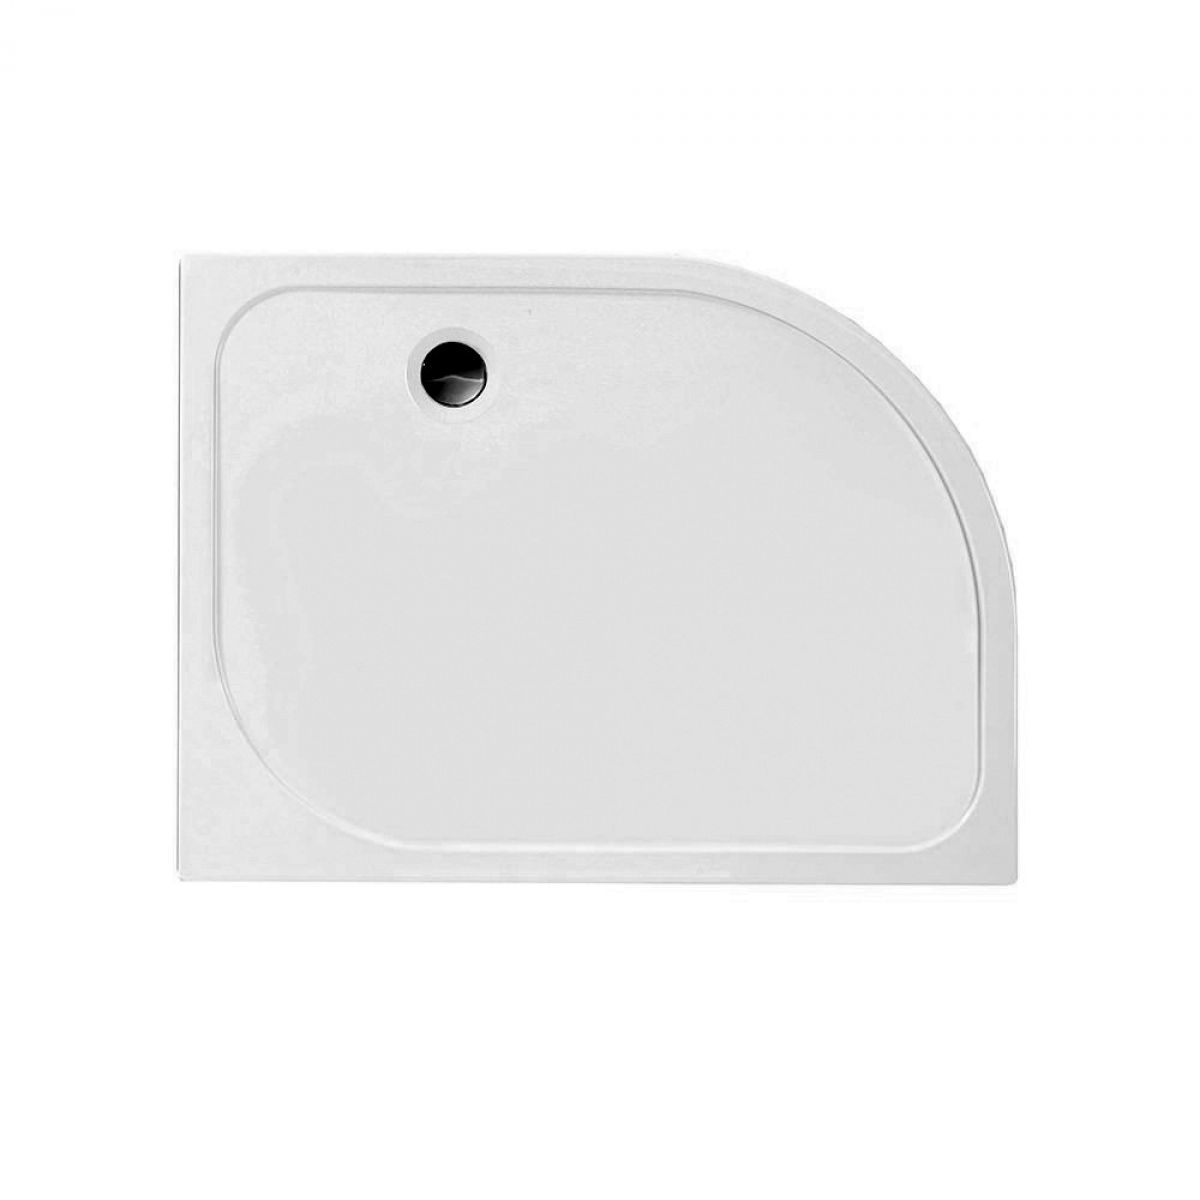 Merlyn MStone 45mm Offset Quadrant Shower Tray